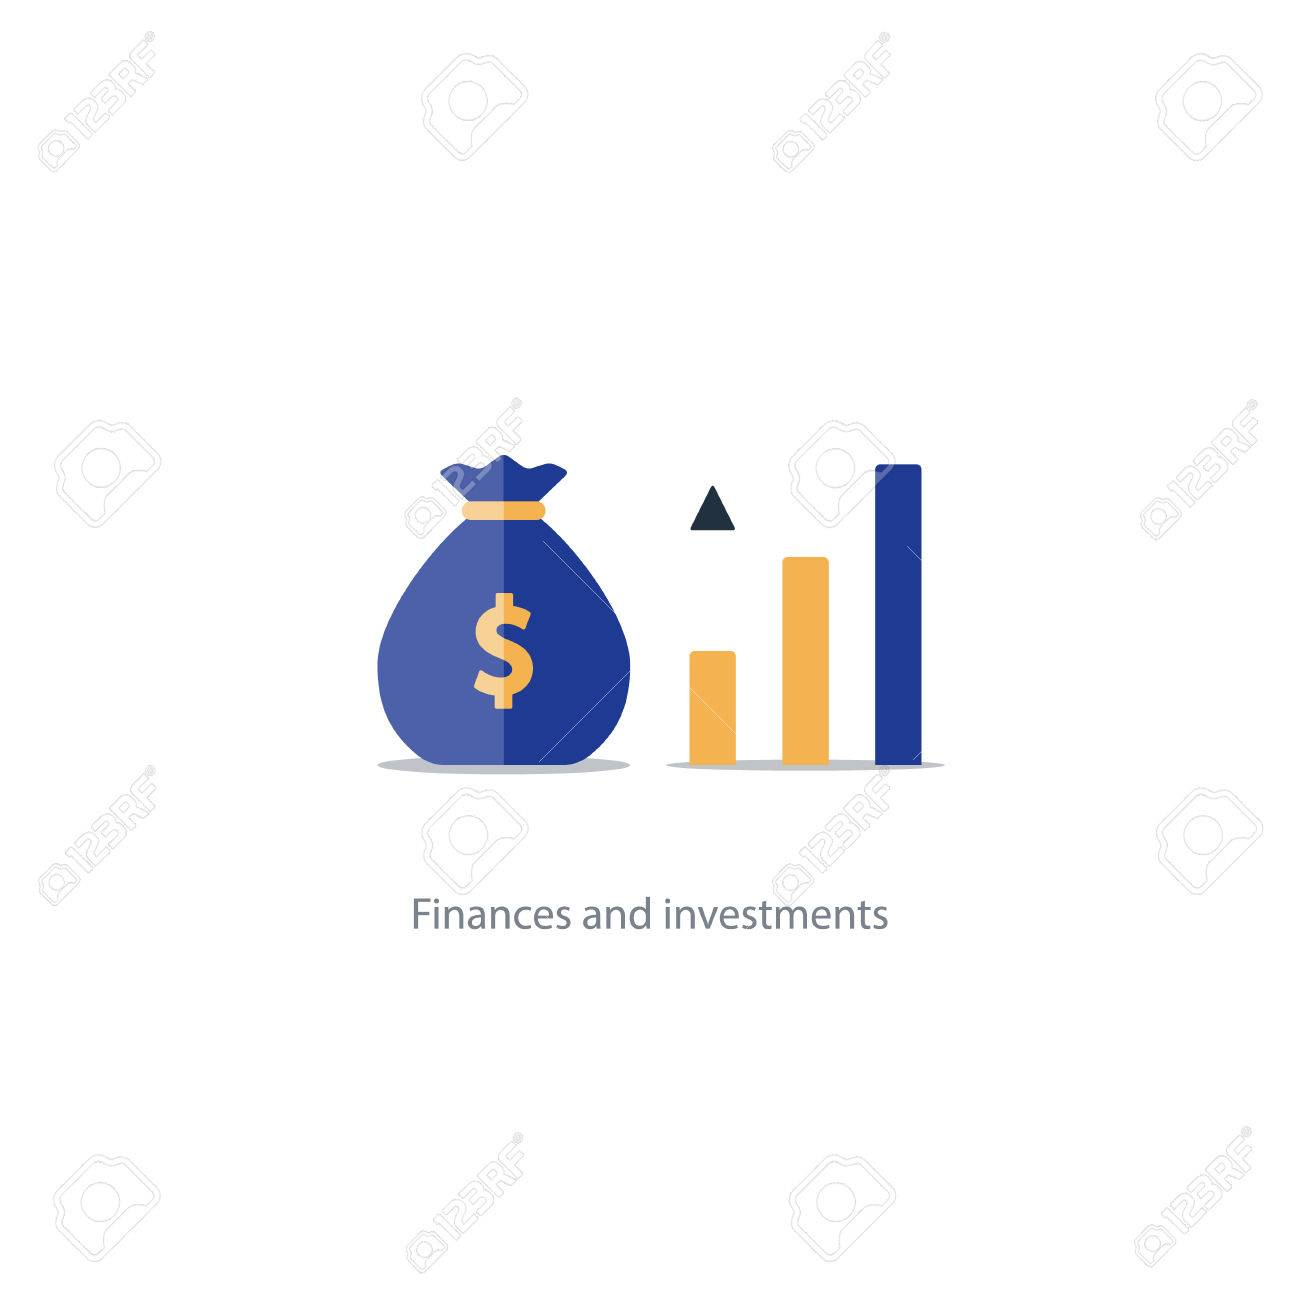 Compound interest, added value, financial investments in stock market, future income growth, revenue increase, money return, pension fund plan, budget management, savings account, banking vector icon - 70130311